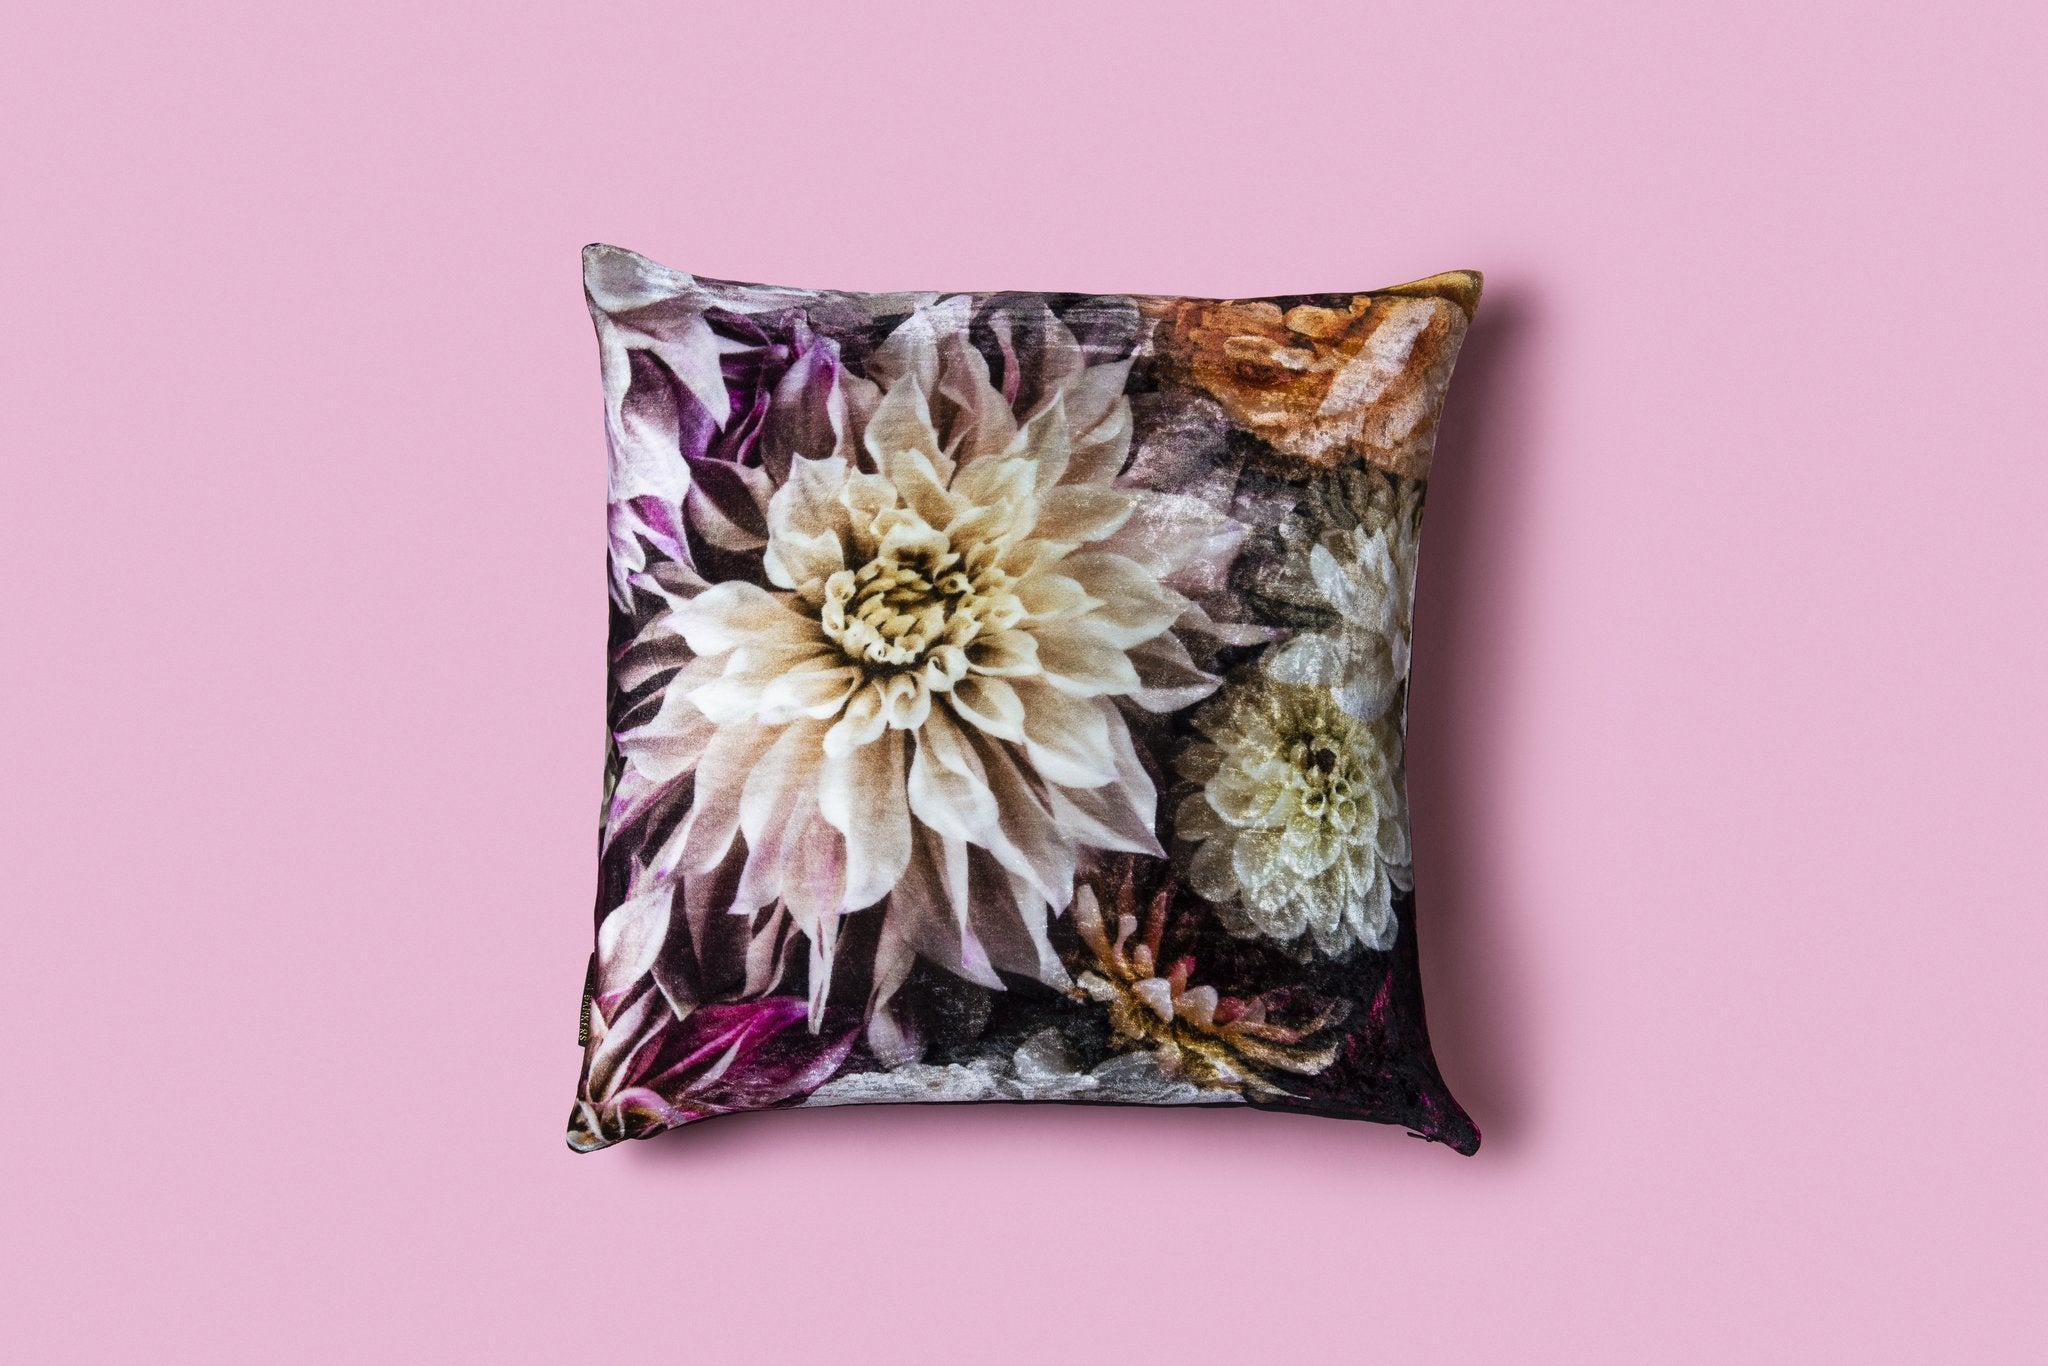 DAHLIA DREAM - SILK VELVET CUSHION COVER - Tilly and Tiffen